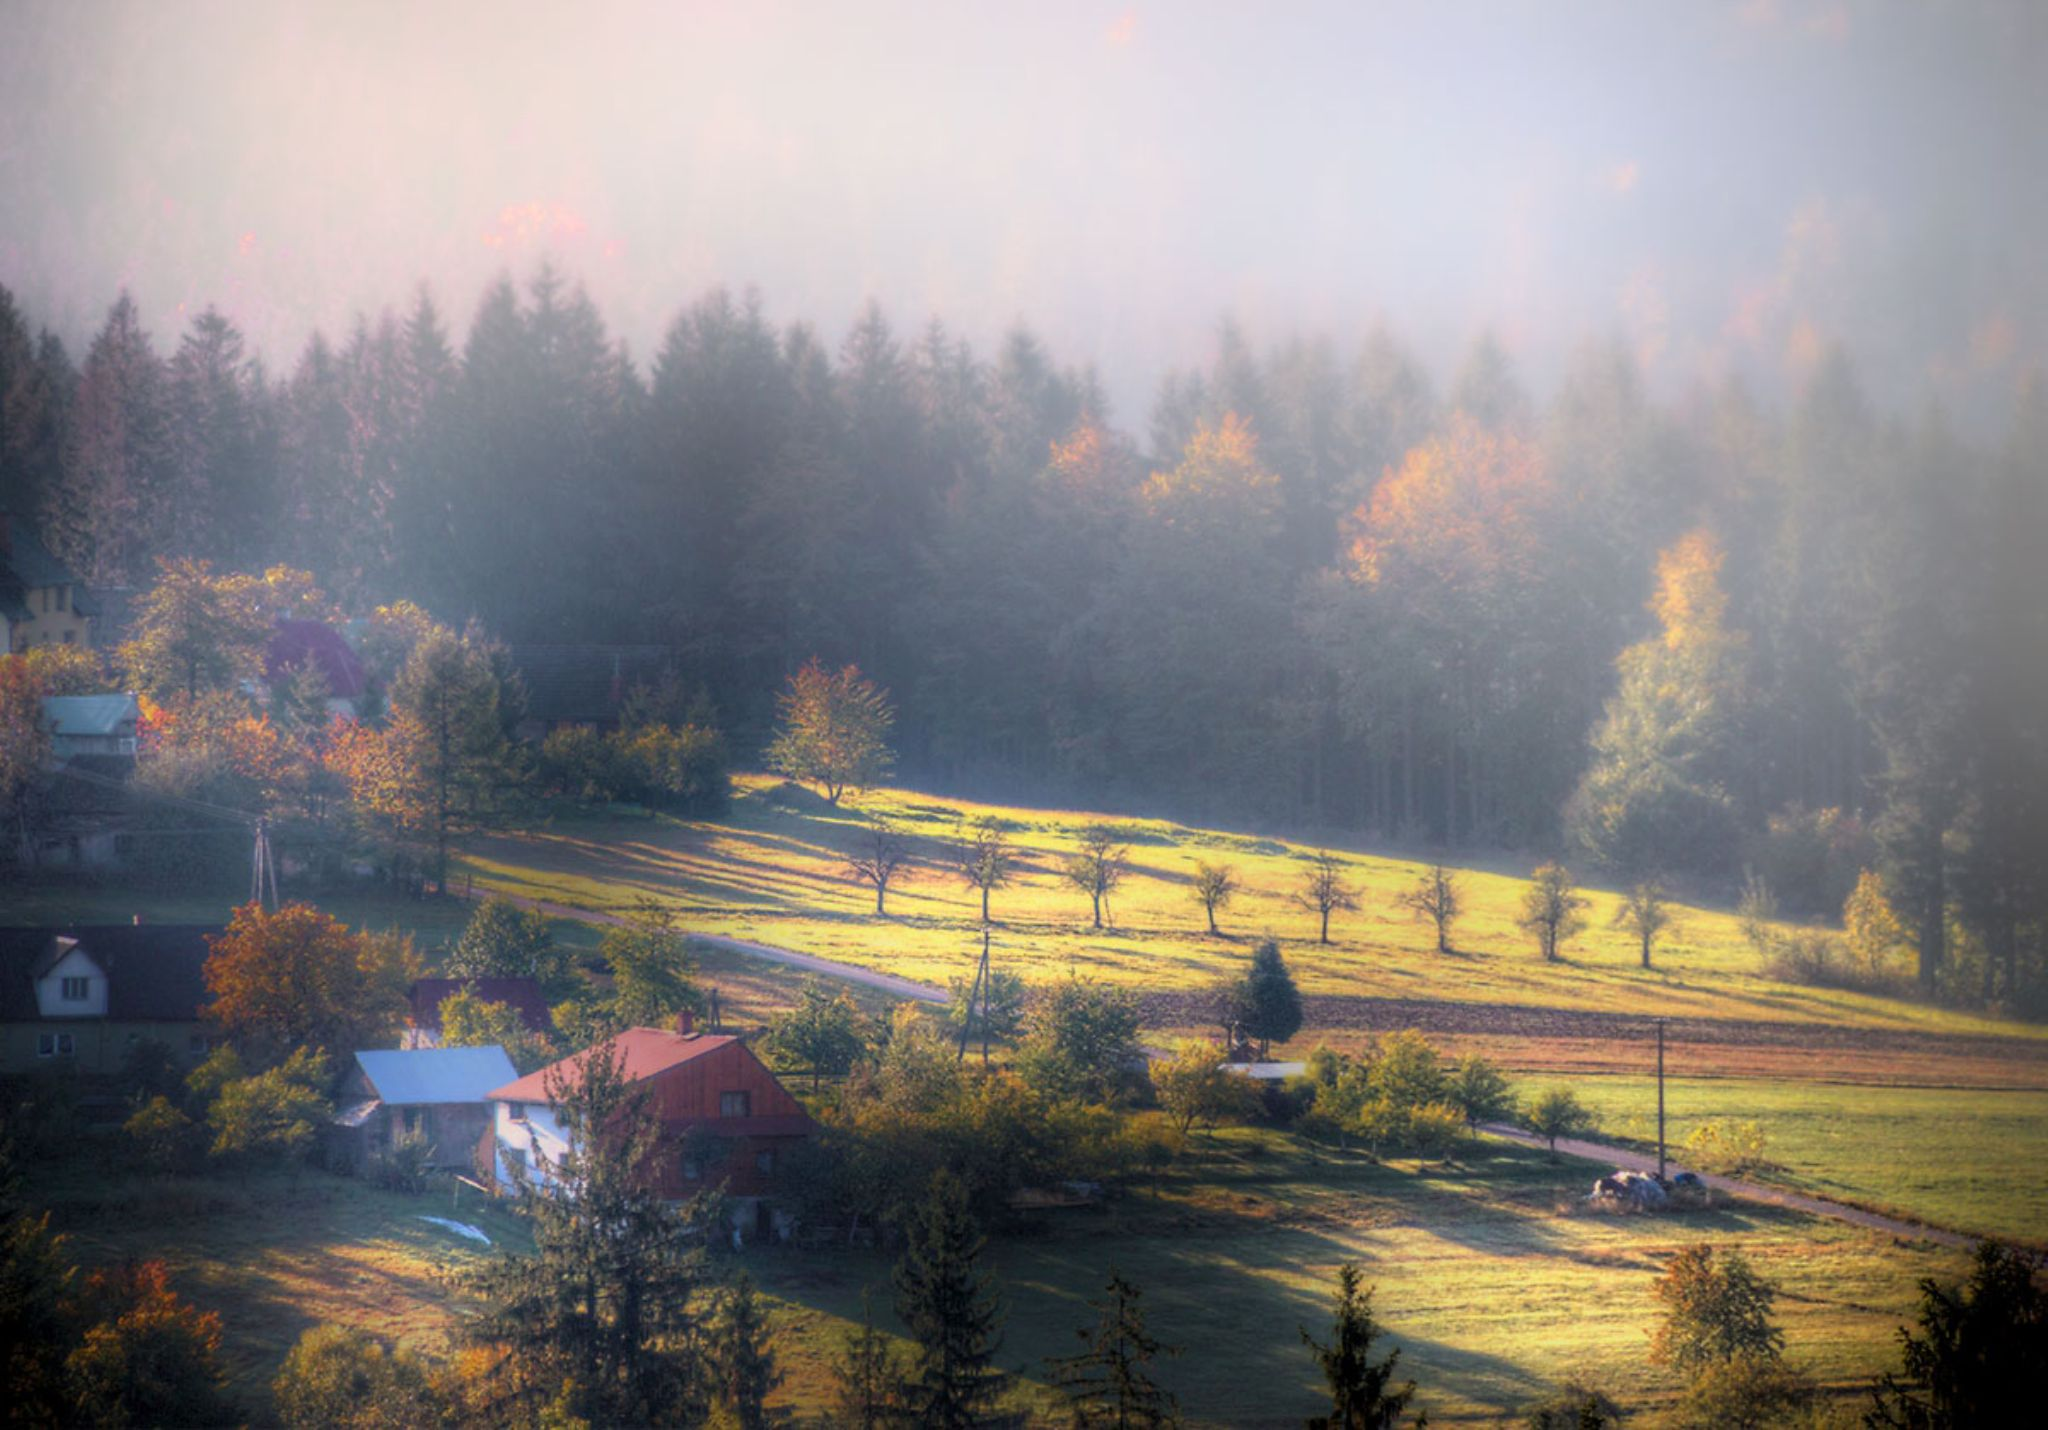 Autumn in the lens by zbych41